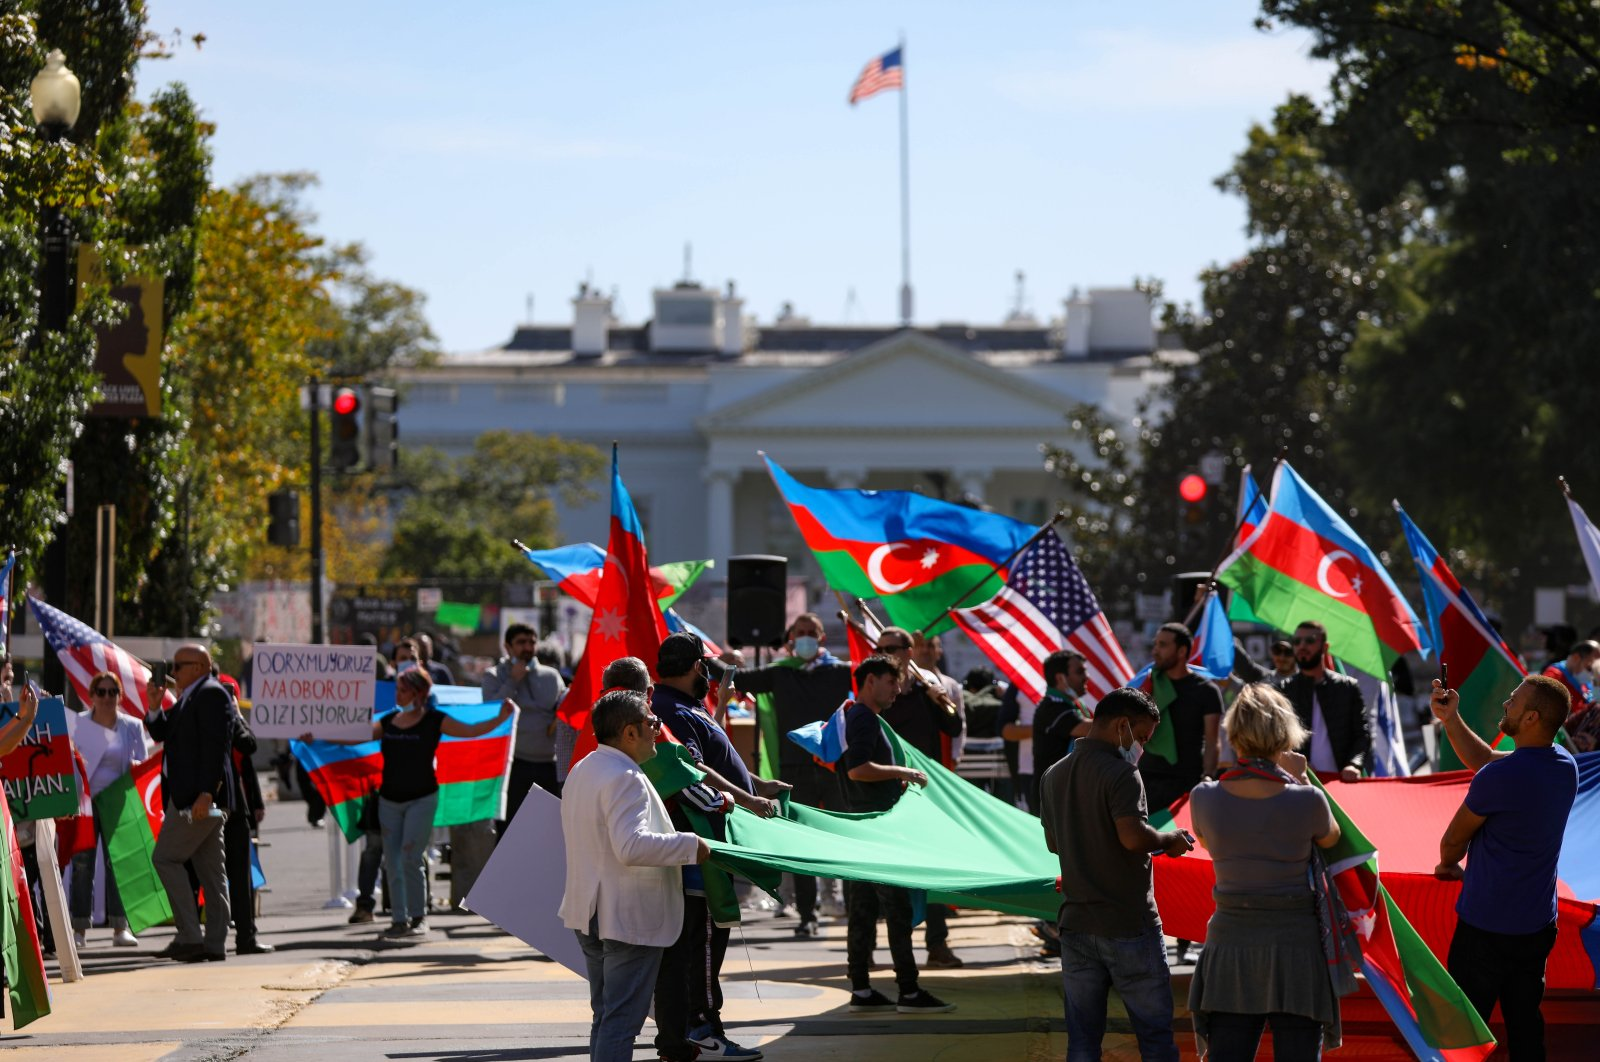 Demonstrators carrying Azerbaijani and Turkish flags gather in front of the White House in order to show their support for Azerbaijan, Washington, D.C., U.S., Oct. 15, 2020. (AA Photo)